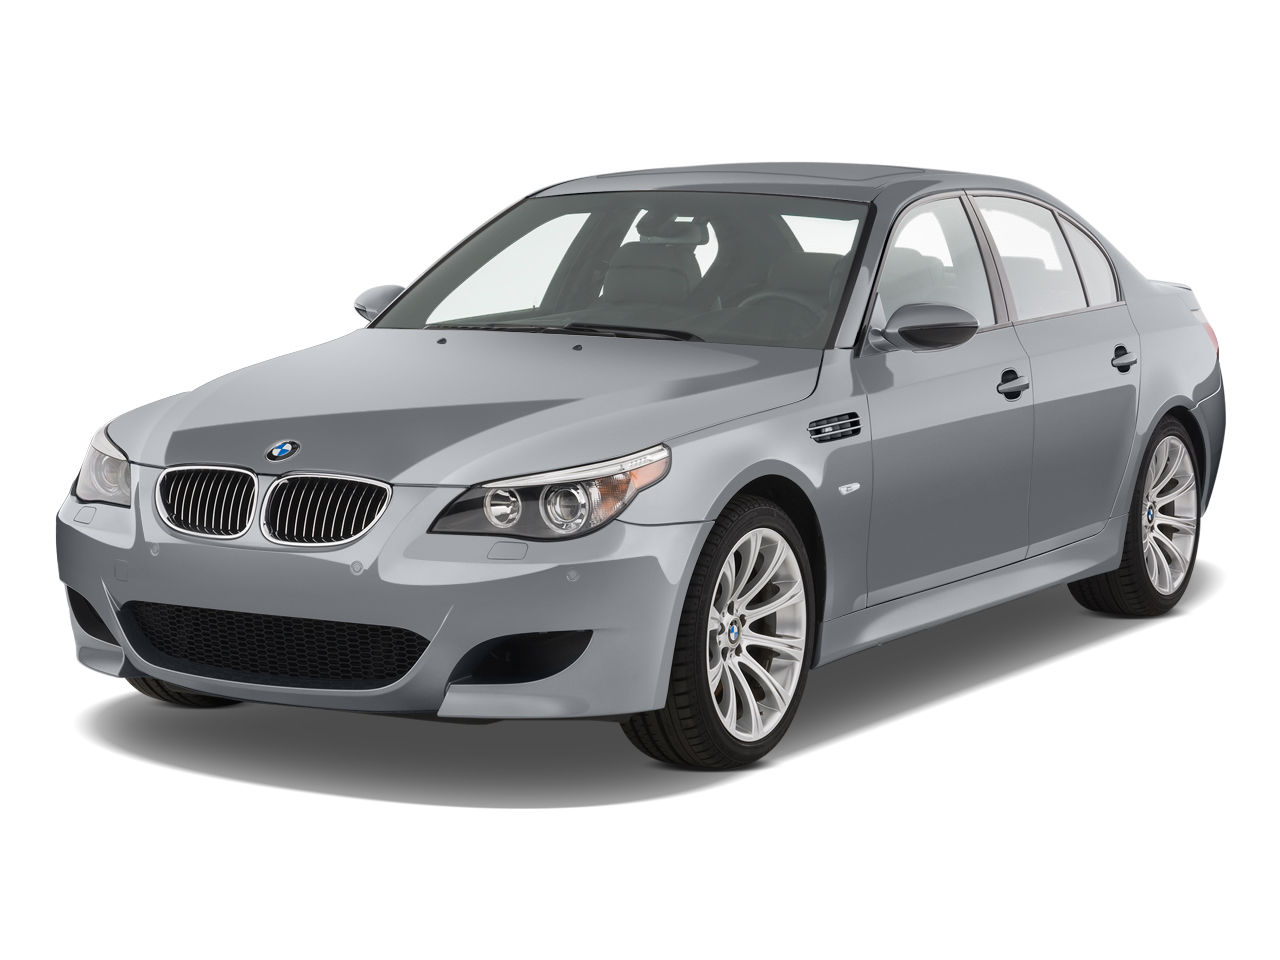 2010 Bmw M5 Review Ratings Specs Prices And Photos The Car